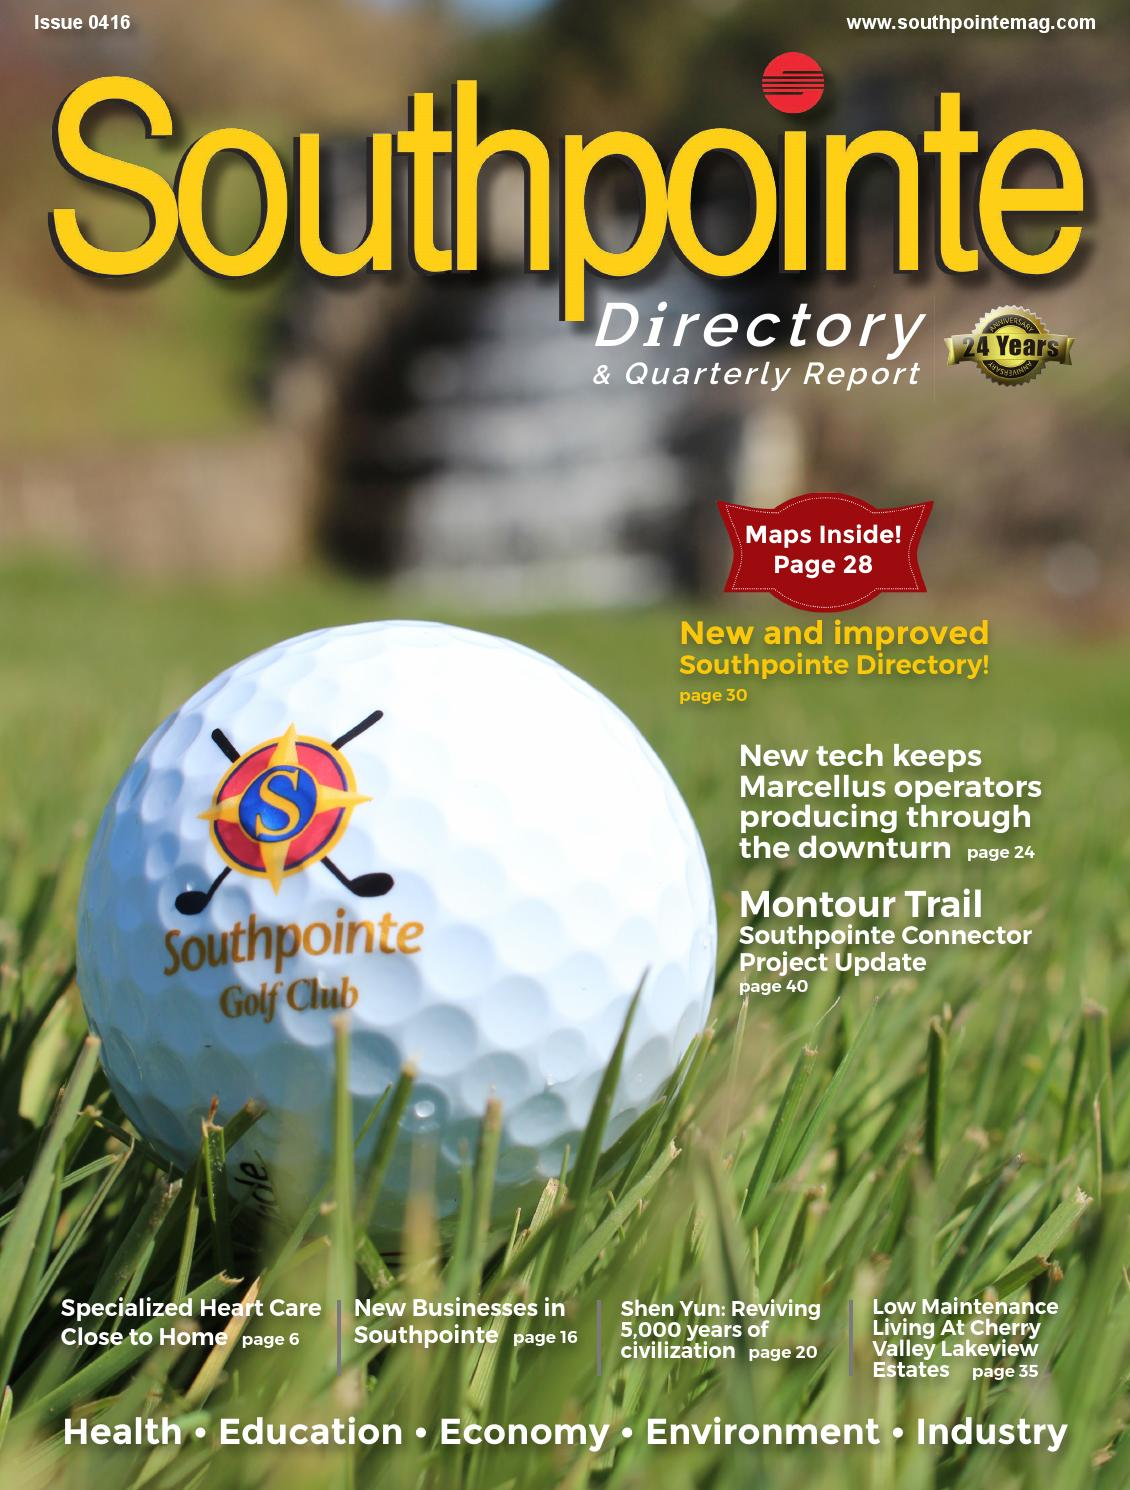 south pointe chevrolet us southpointe amp marcellus shale magazine by southpointe magazine